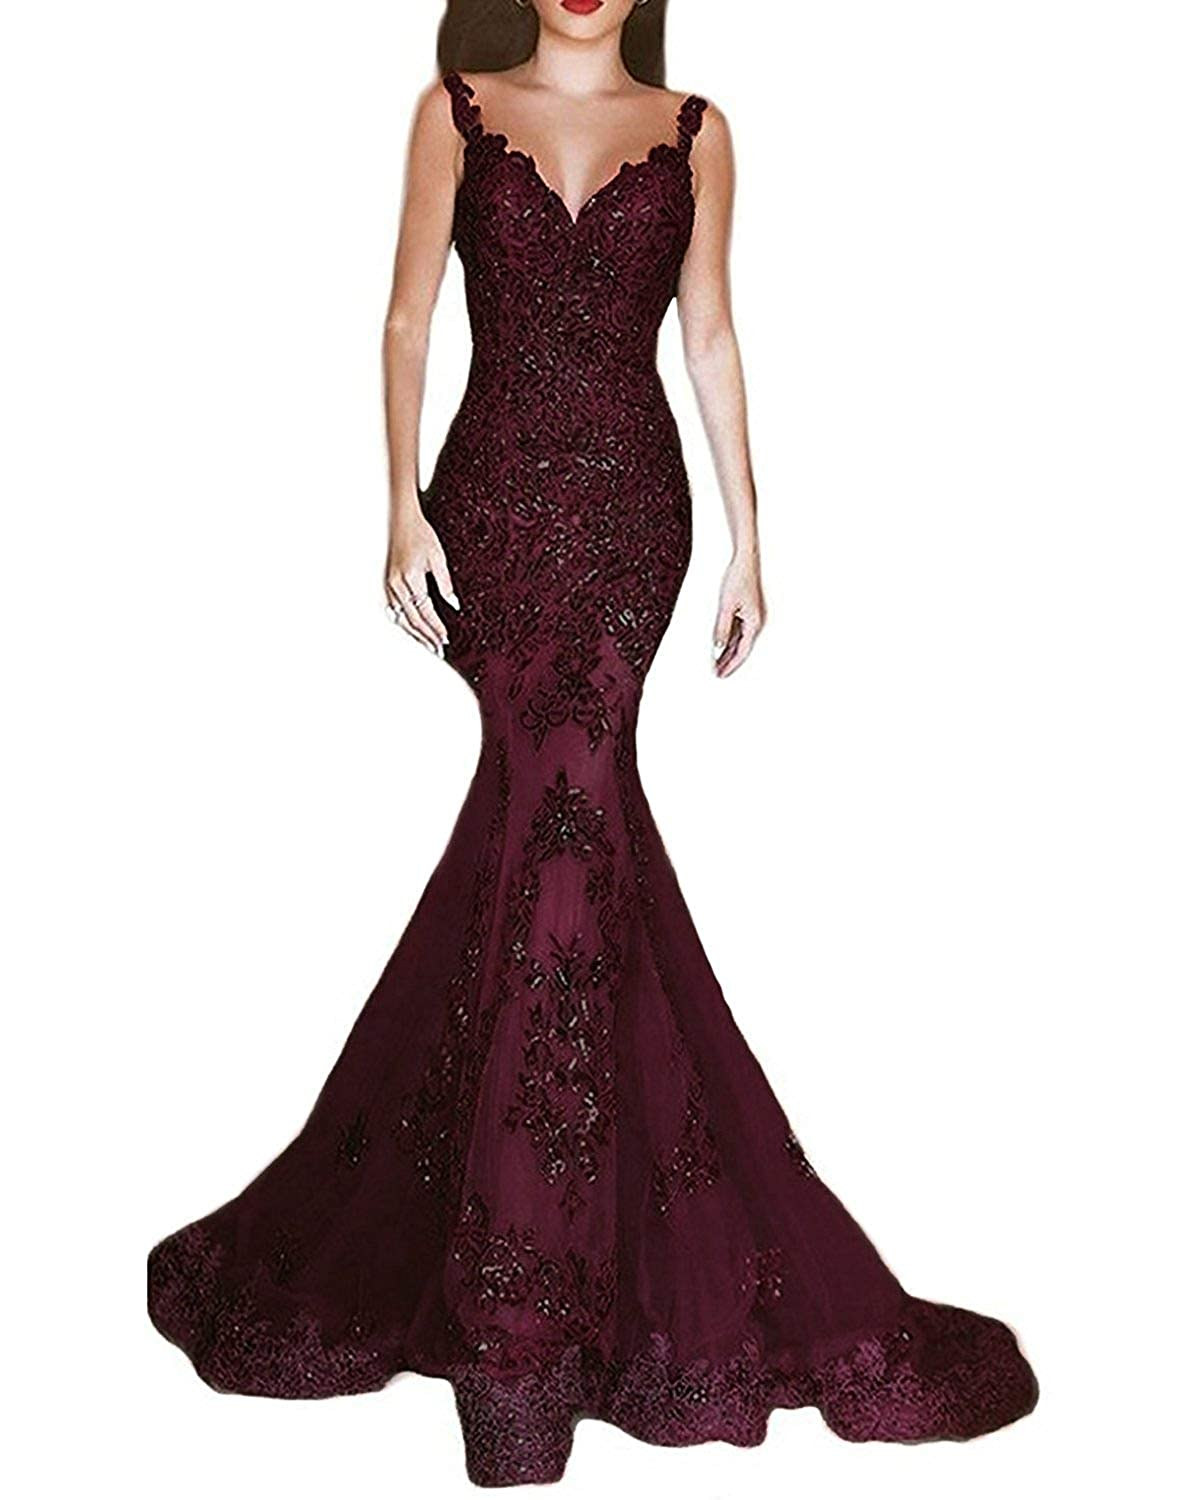 Dark Red ASBridal Lace Evening Dress Mermaid Prom Dresses Long Sequin Formal Party Evening Gowns Sheer Back